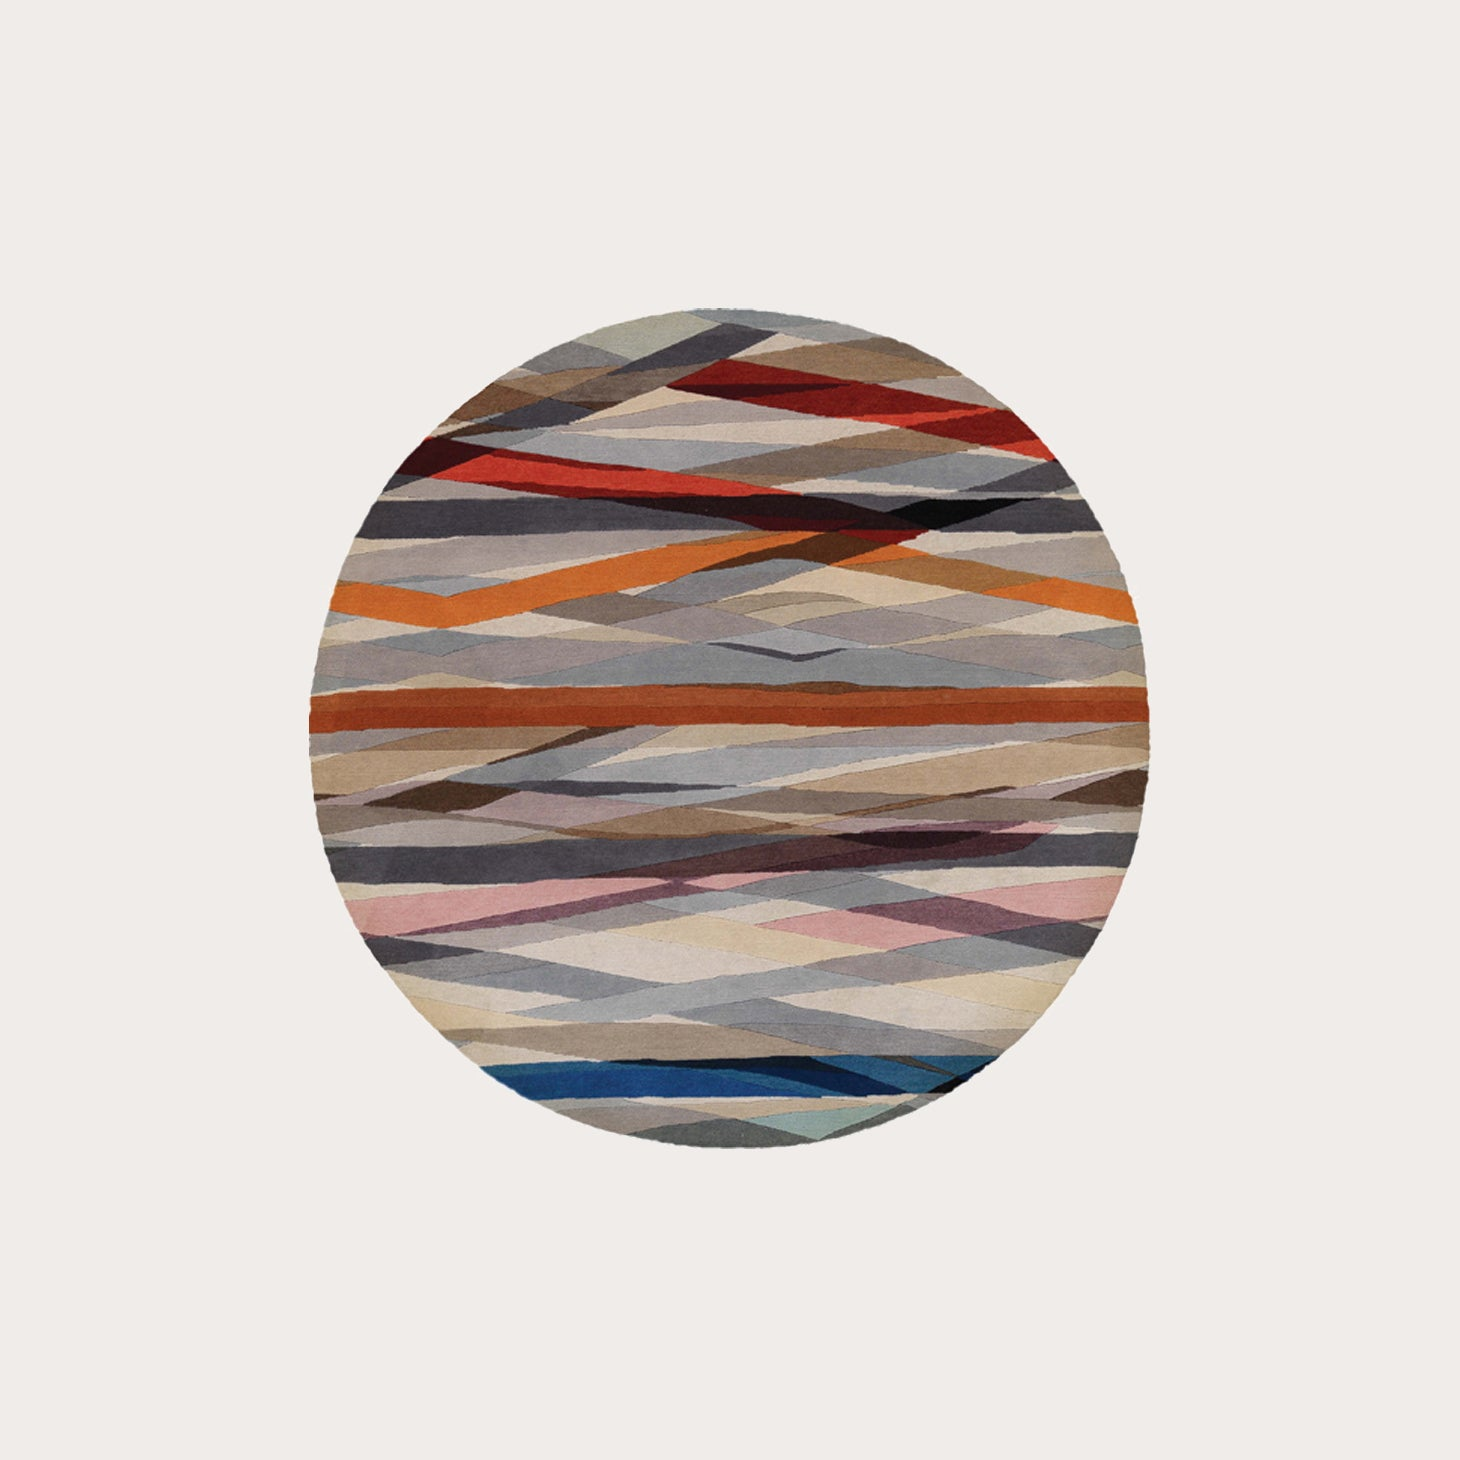 Carnival Round Rugs Paul Smith Designer Furniture Sku: 391-150-11462